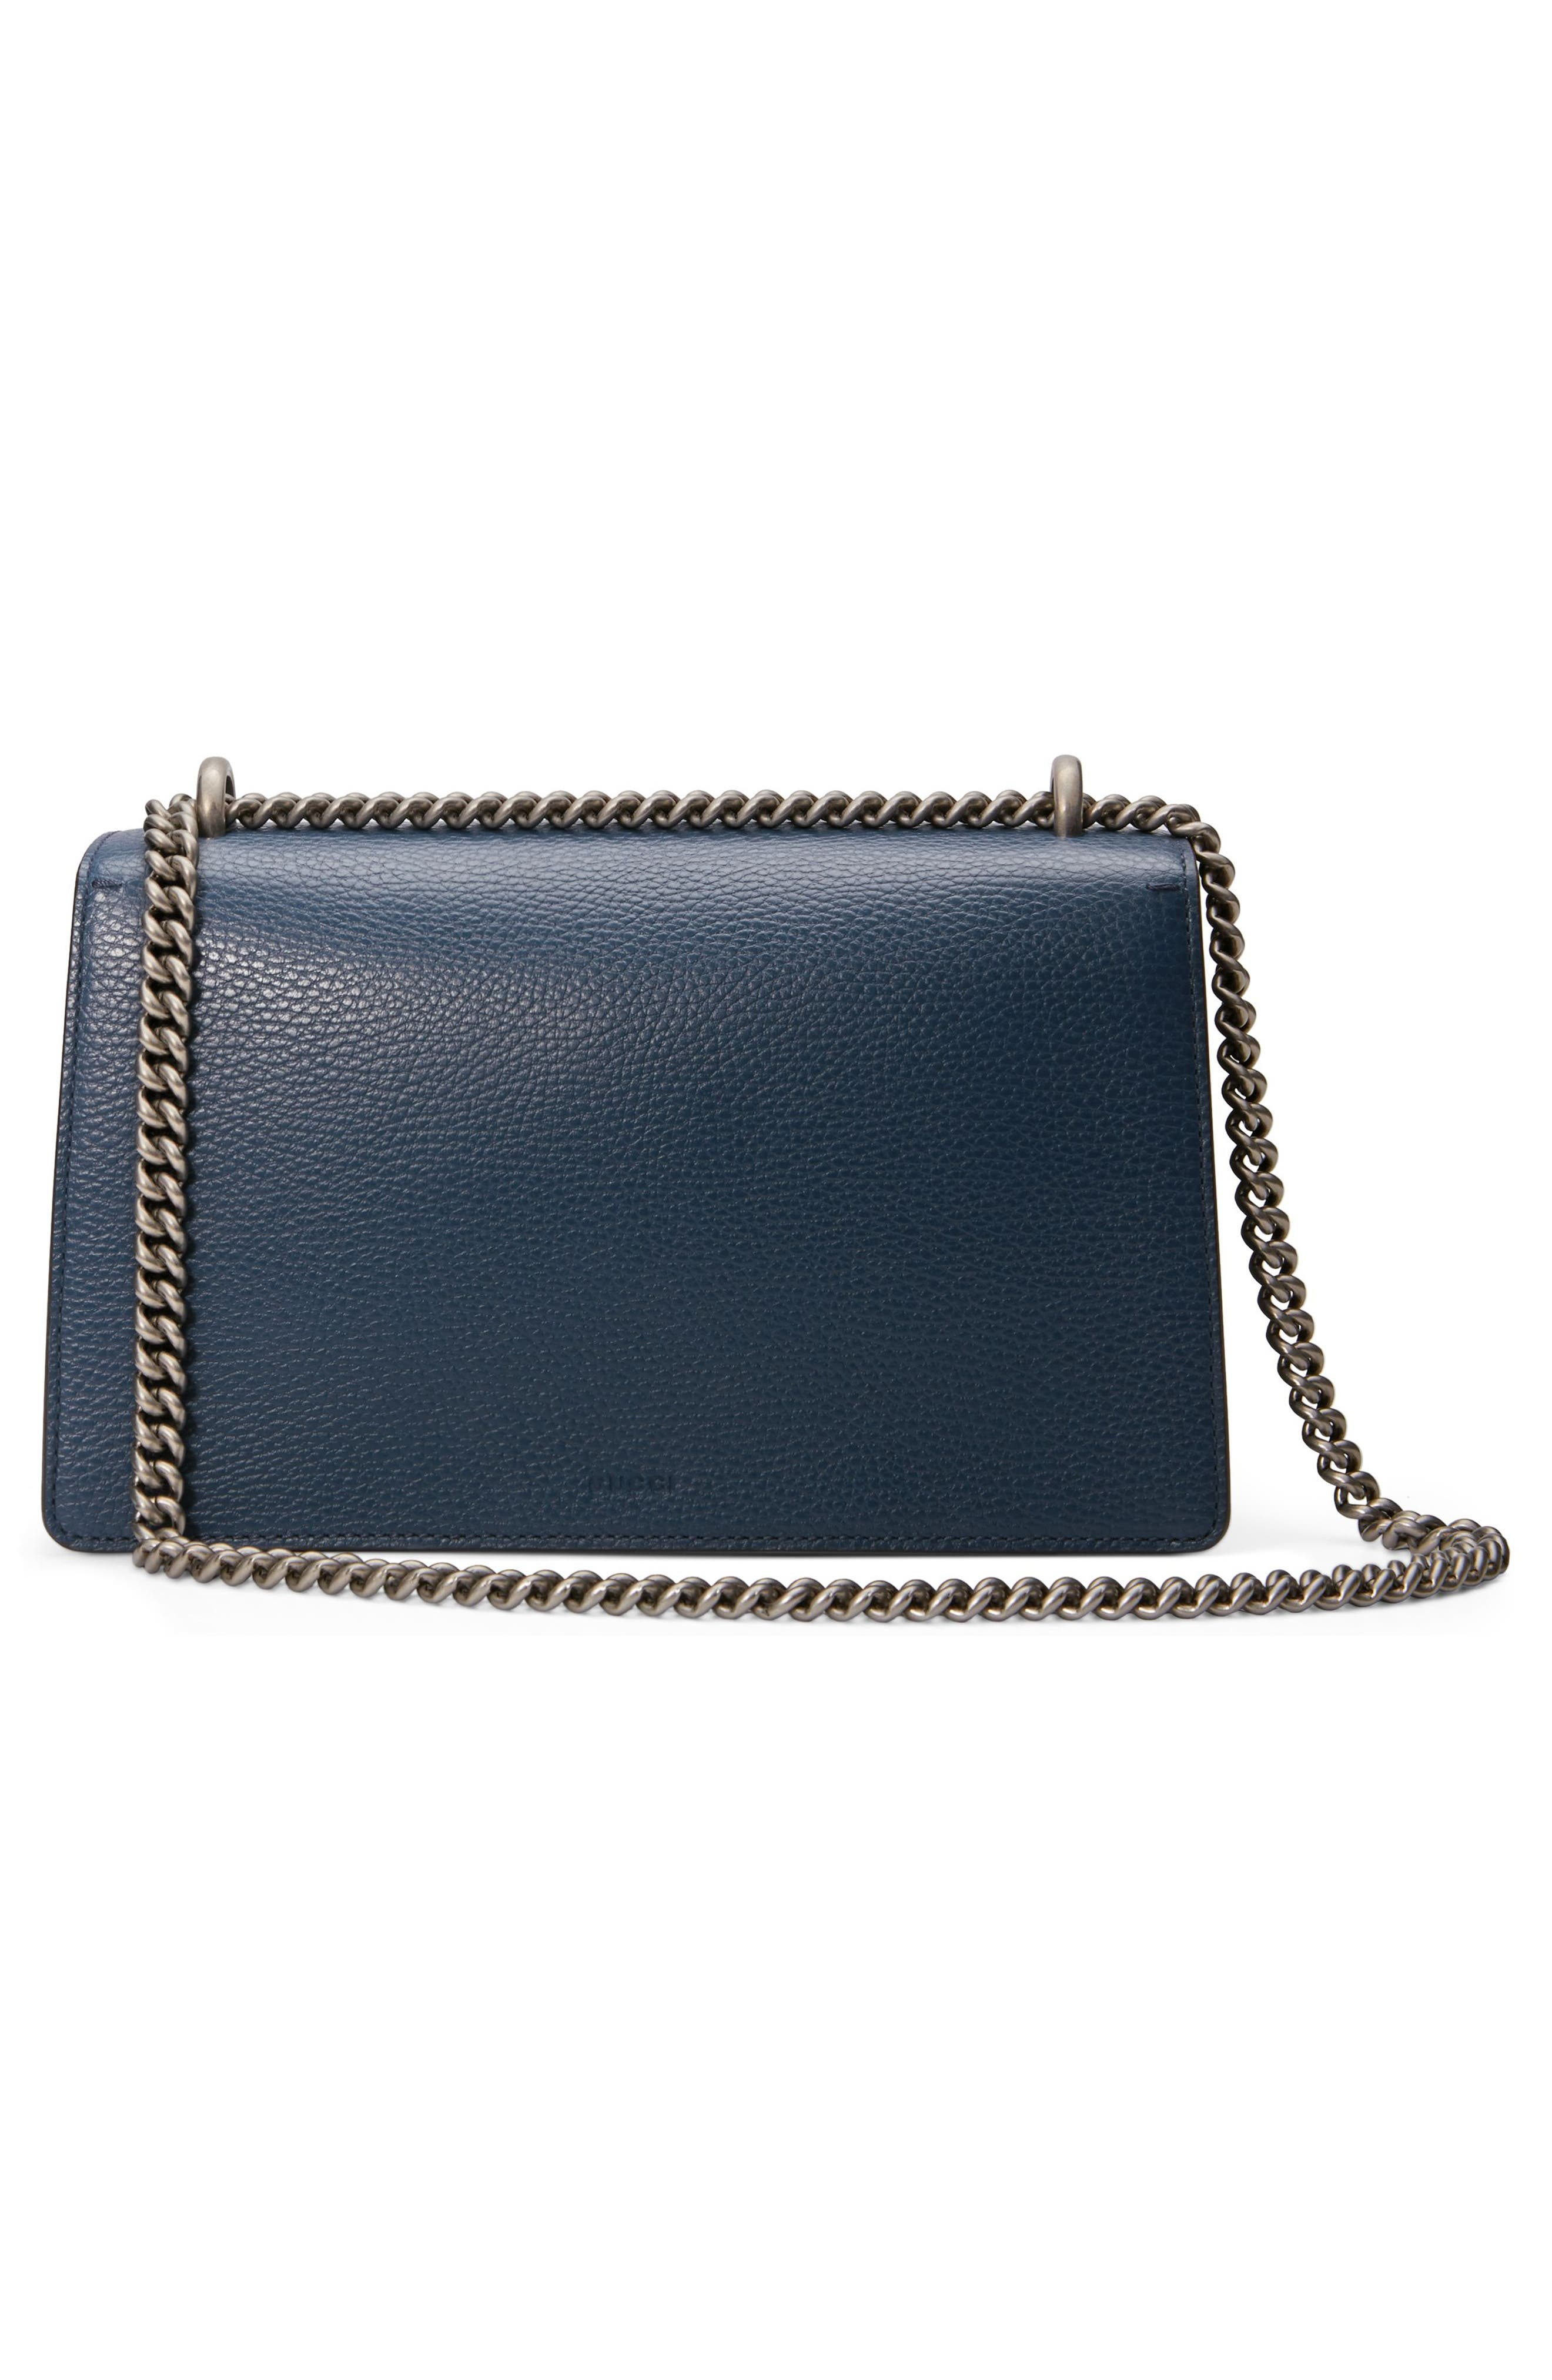 Small Dionysus Leather Shoulder Bag,                             Alternate thumbnail 2, color,                             BLU AGATA/ MONTANA